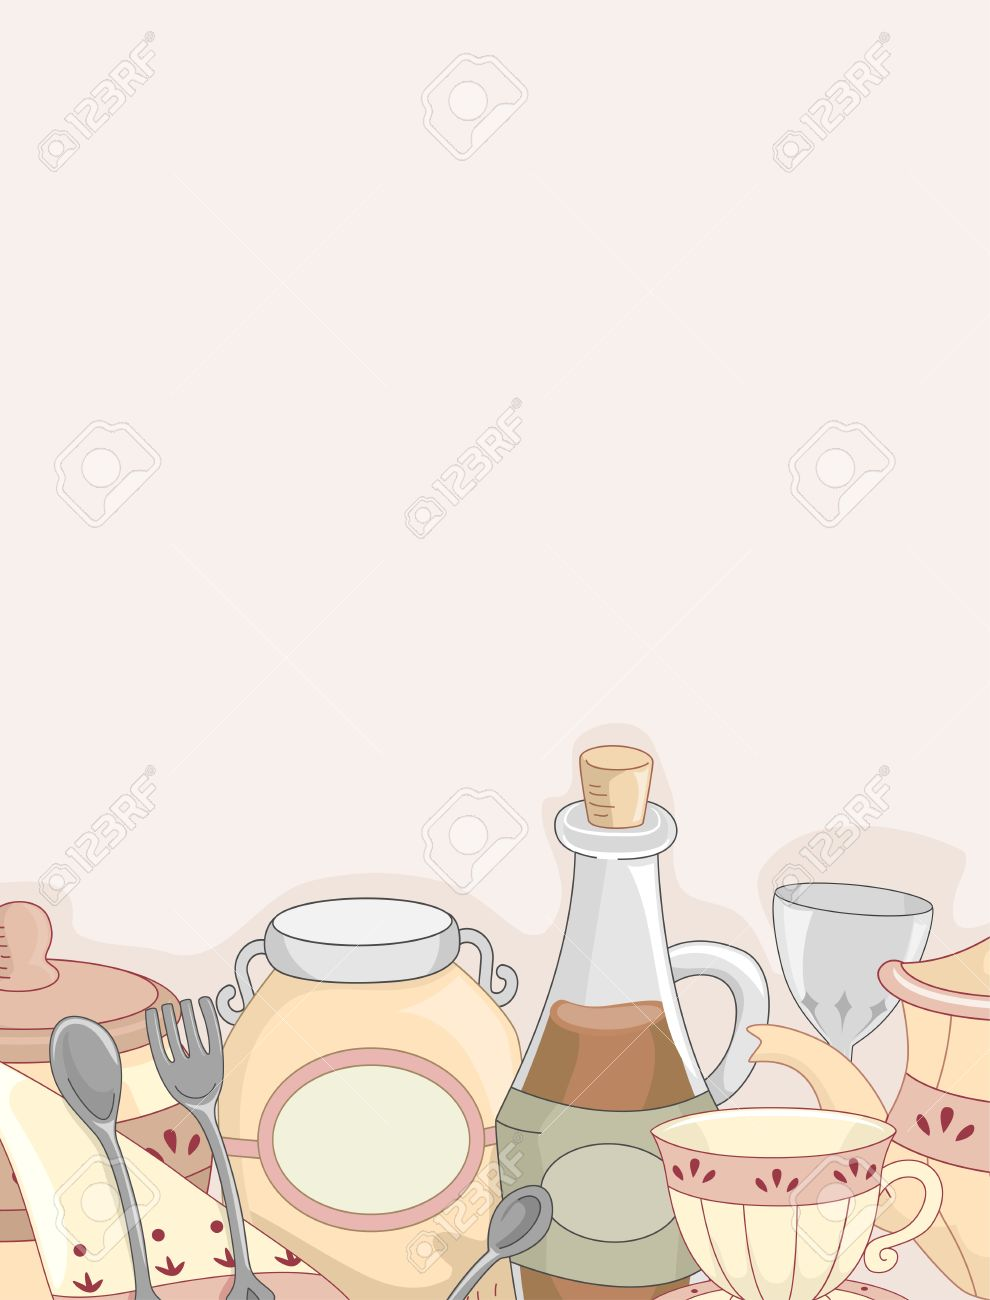 Kitchen Utensils Background background illustration of a country kitchen utensils stock photo